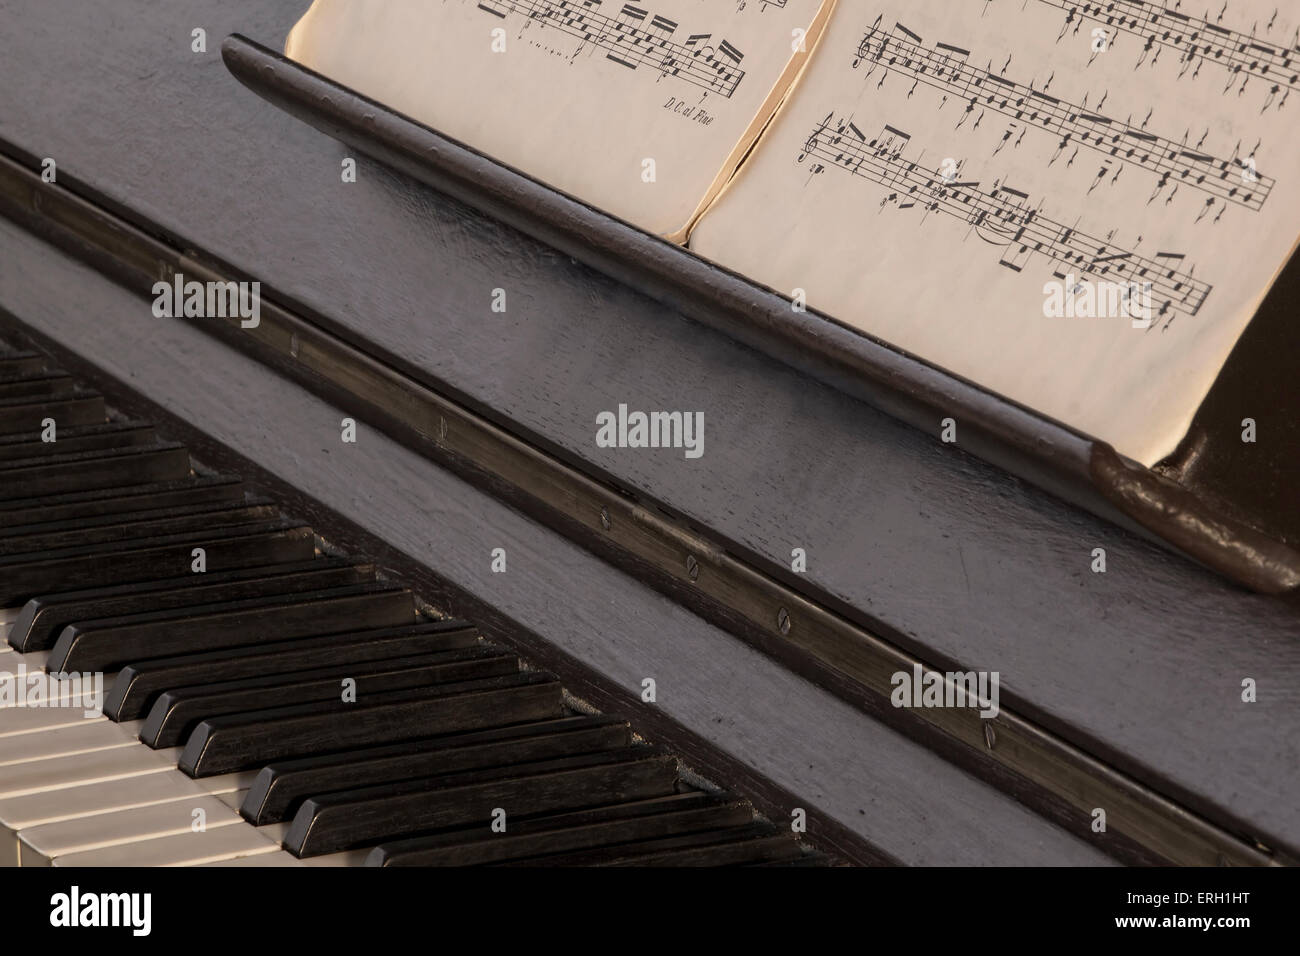 Old, classical, music, and vintage piano and scores  Concept